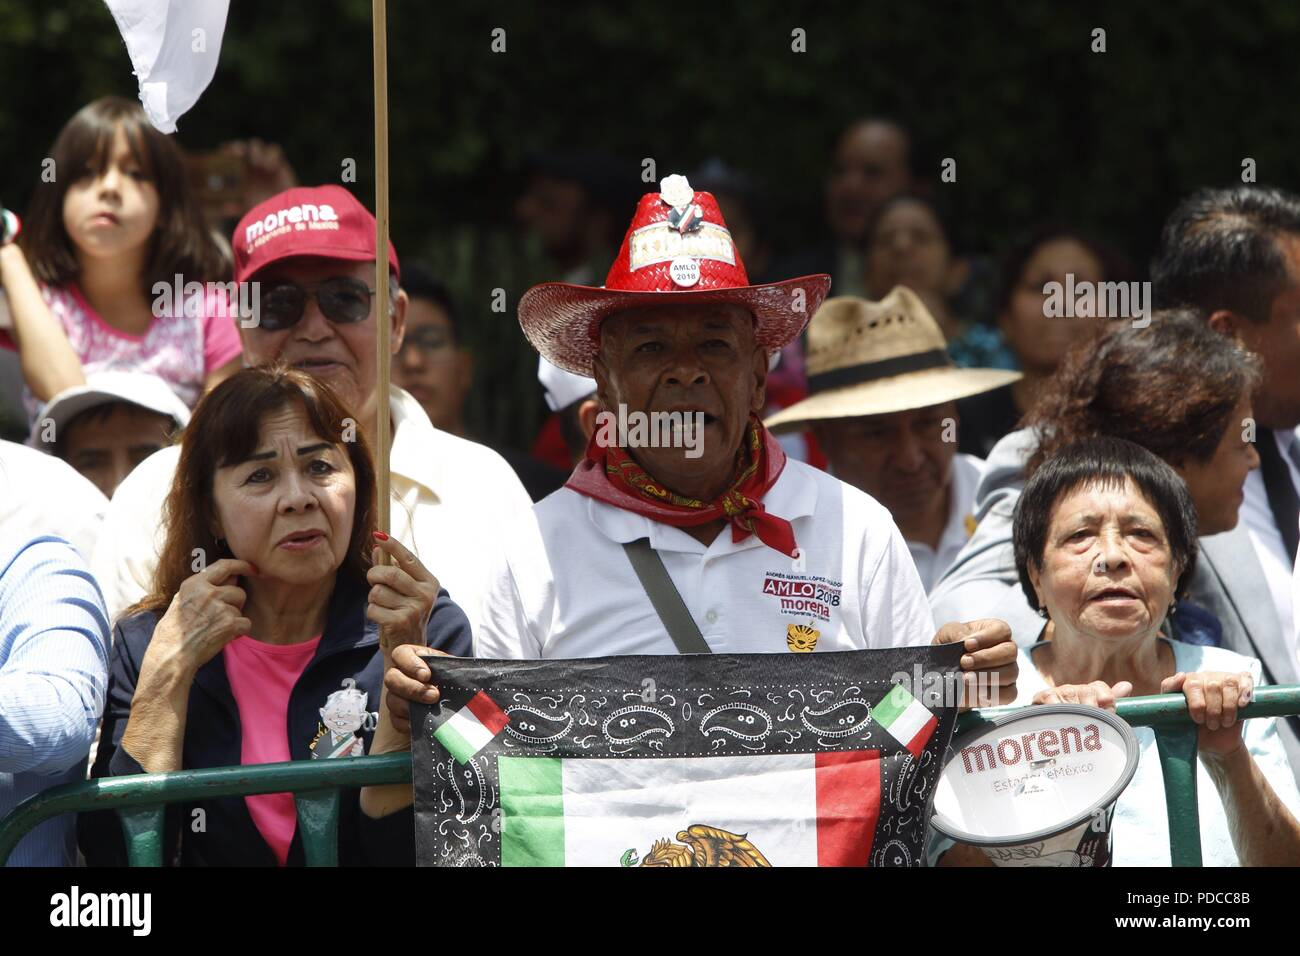 Mexico City, Mexico. 8th August, 2018. Sympathizers of Mexican President-elect Andres Manuel Lopez Obrador greet him as he arrives at the Electoral Court of the Federation's Judicial Power, in Mexico City, Mexico, 08 August 2018. The Court validated the Mexican election and Obrador's victory. EFE/Mario Guzman Credit: EFE News Agency/Alamy Live News Stock Photo